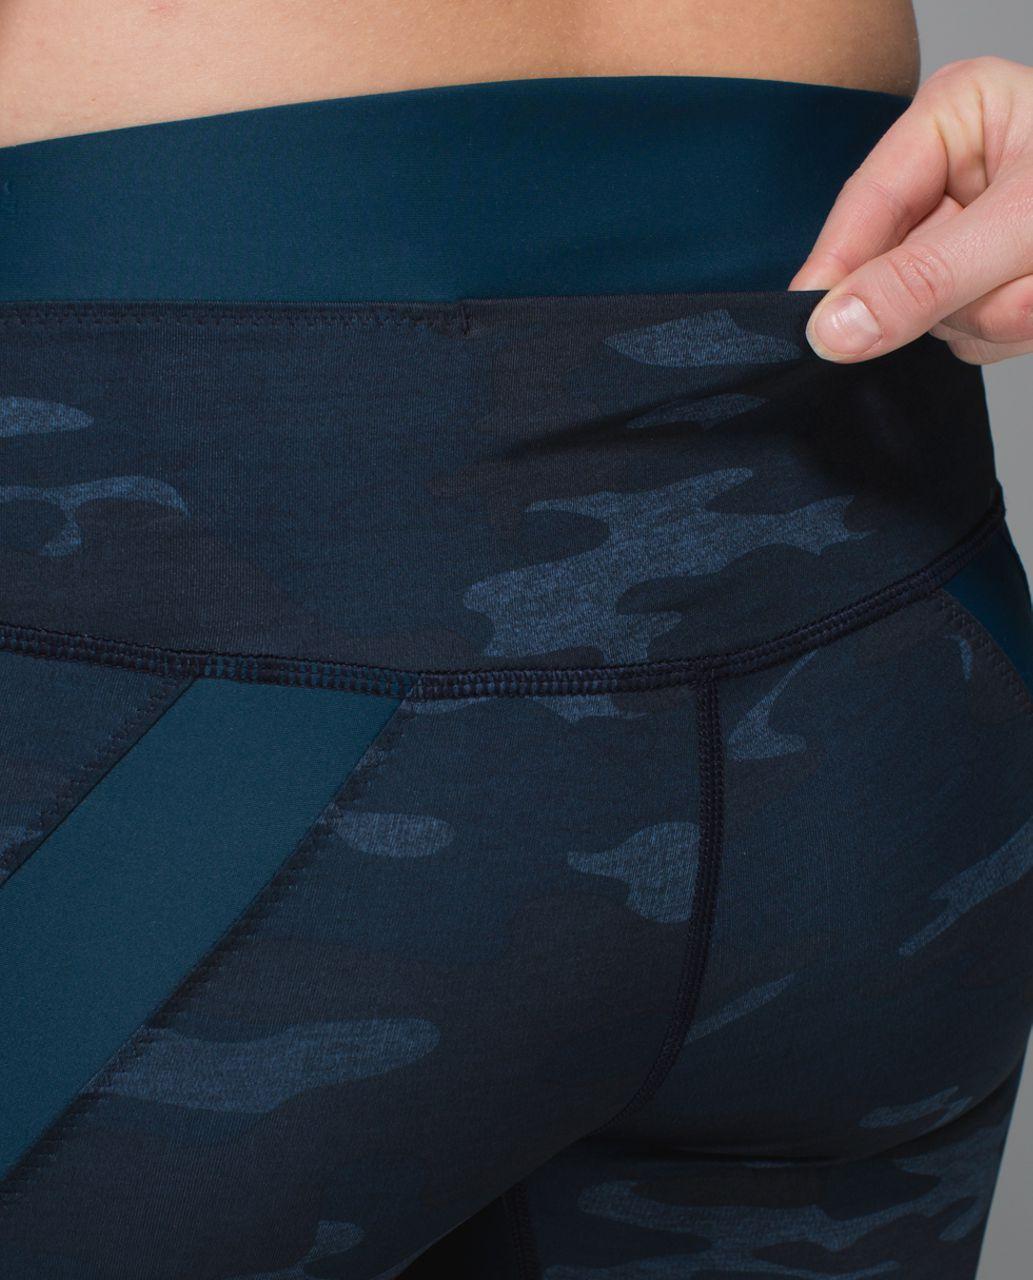 Lululemon Clip-In Short - Heathered Texture Lotus Camo Oil Slick Blue